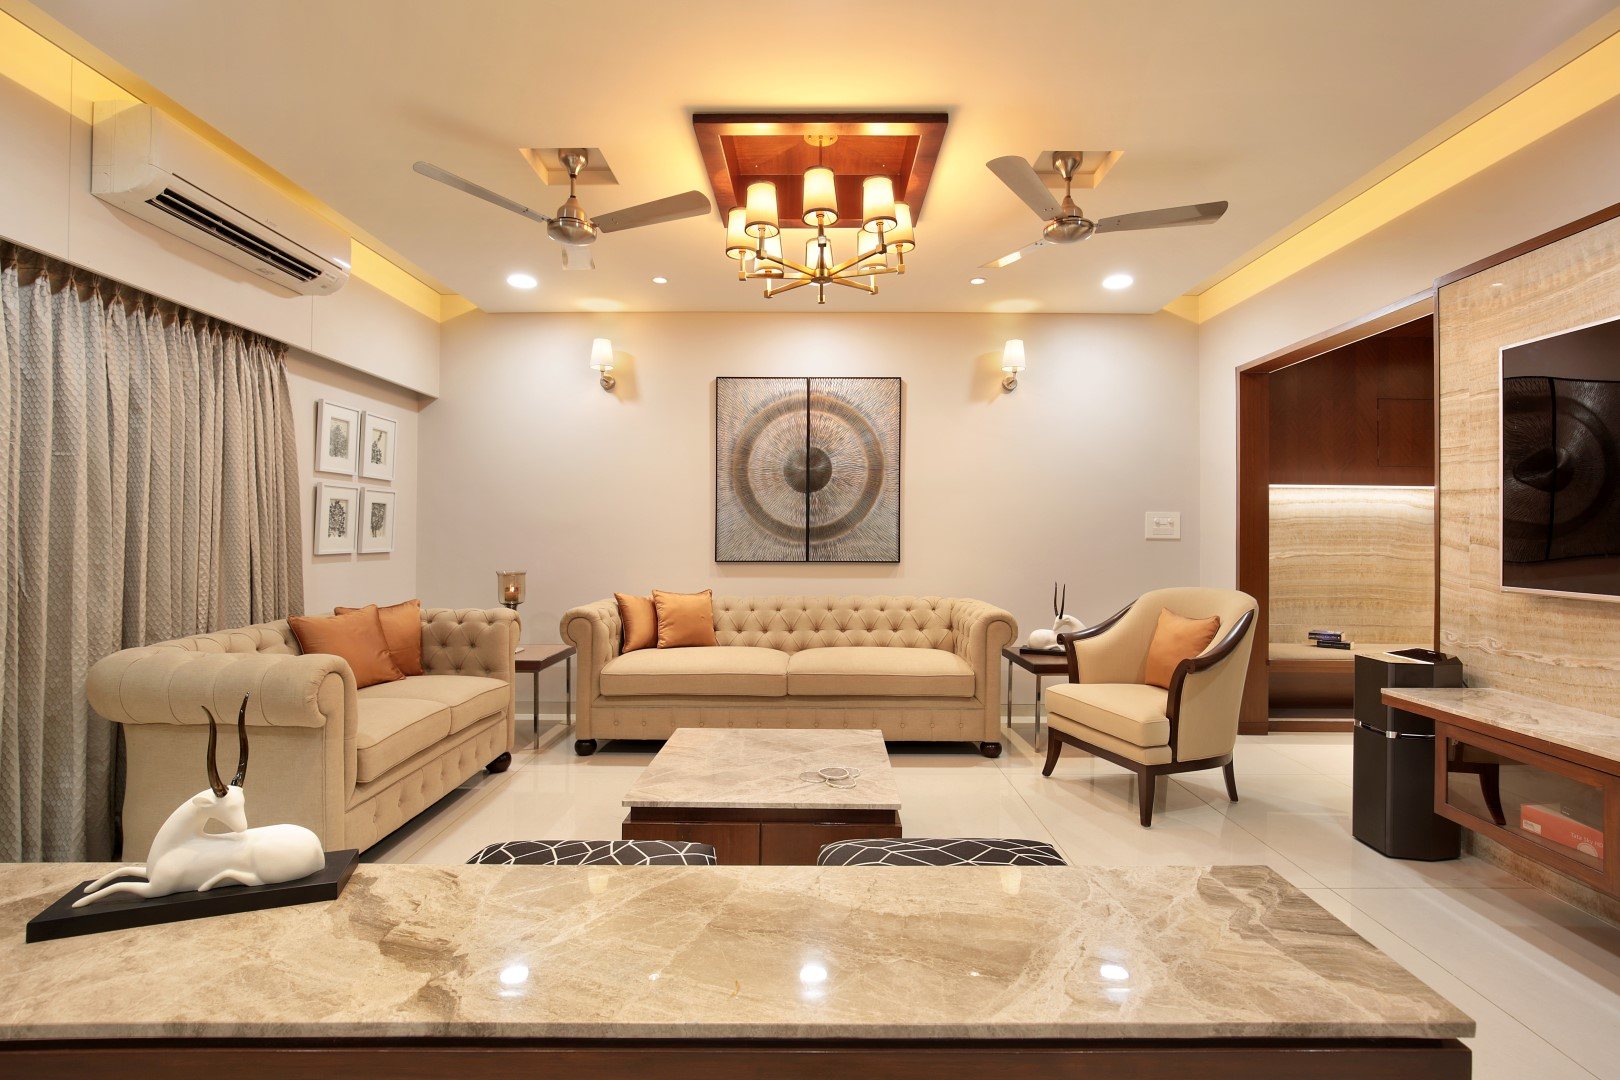 3 bhk flat interiors the oak woods vadodara studio7 for Best interior designs for 3 bhk flats